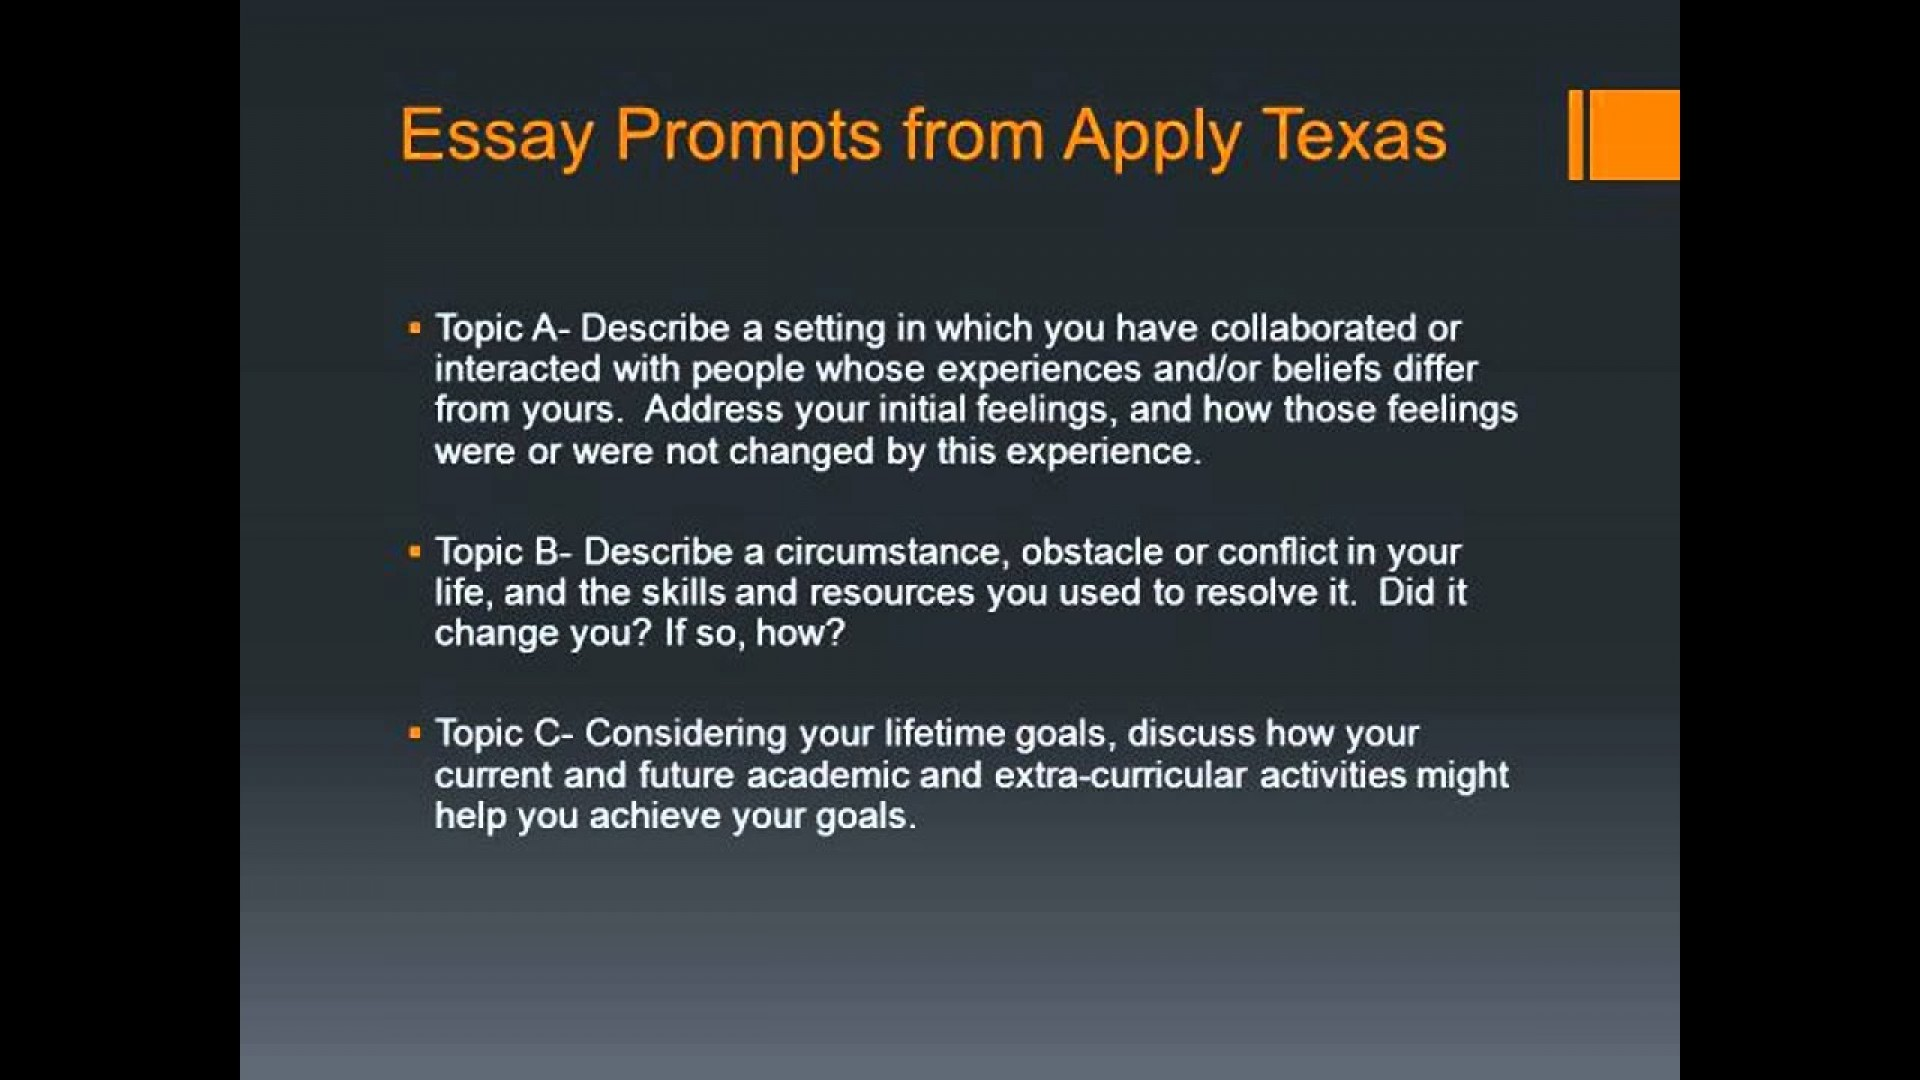 006 Essay Example Apply Texas Examples Unusual C 2017 Topic A 2018 College 1920